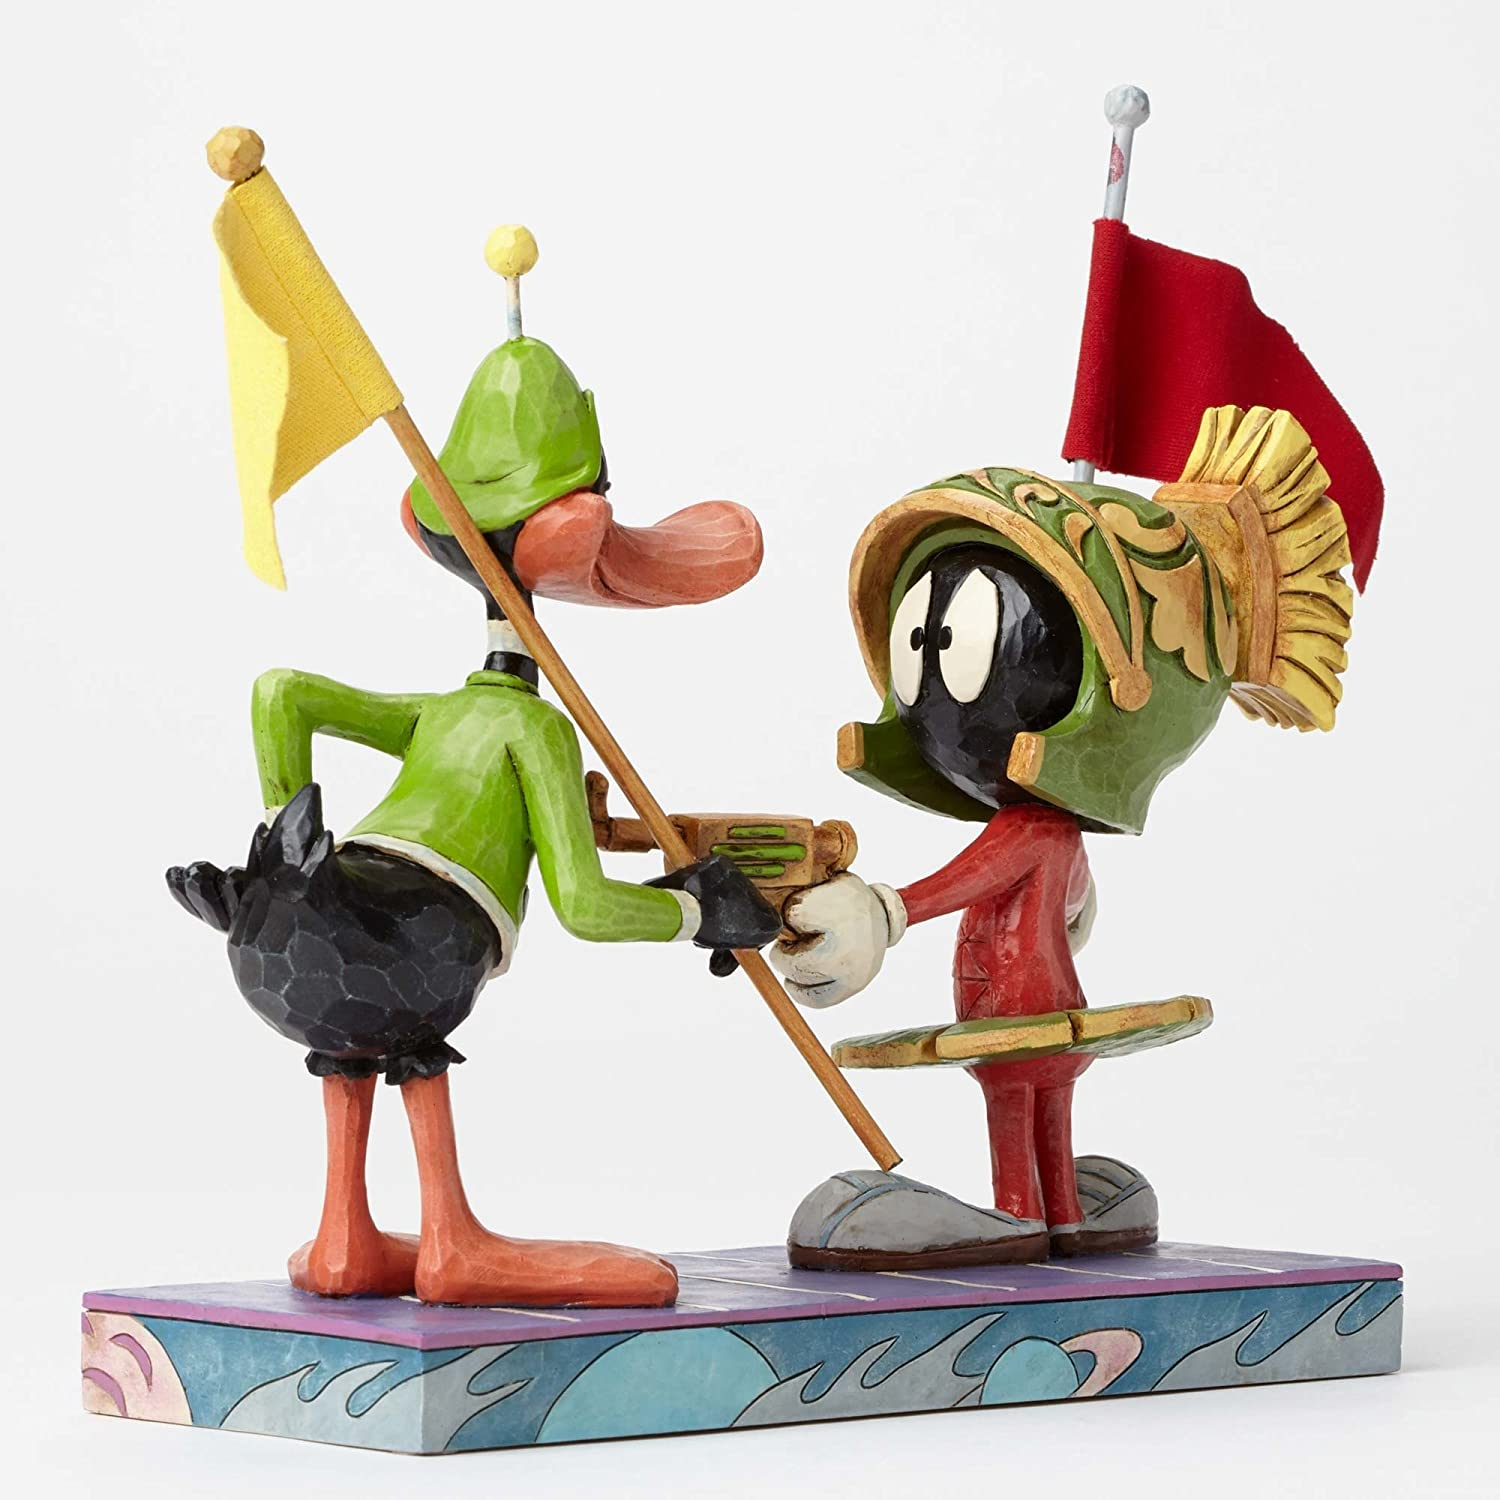 Looney Tunes Marvin the Martian and Daffy Duck 6.75 Inch Tall Hand-Painted Figurine by Jim Shore Enesco